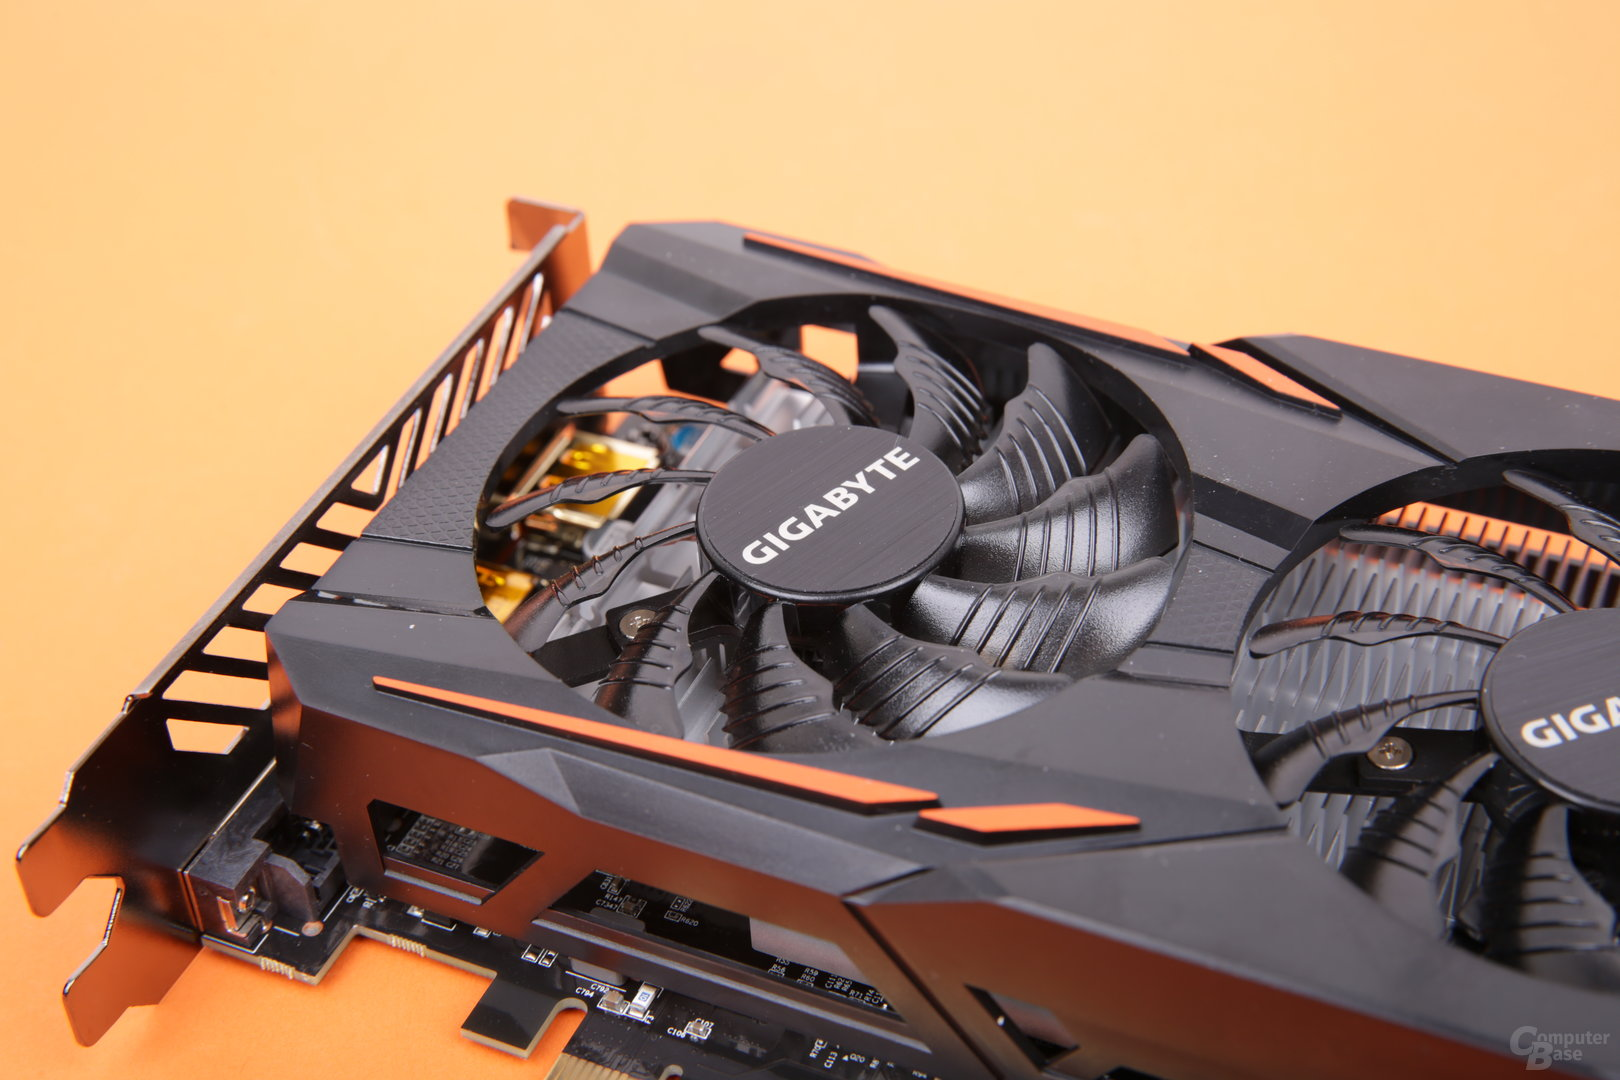 Gigabyte GeForce GTX 1050 3GB Windforce – Lüfter